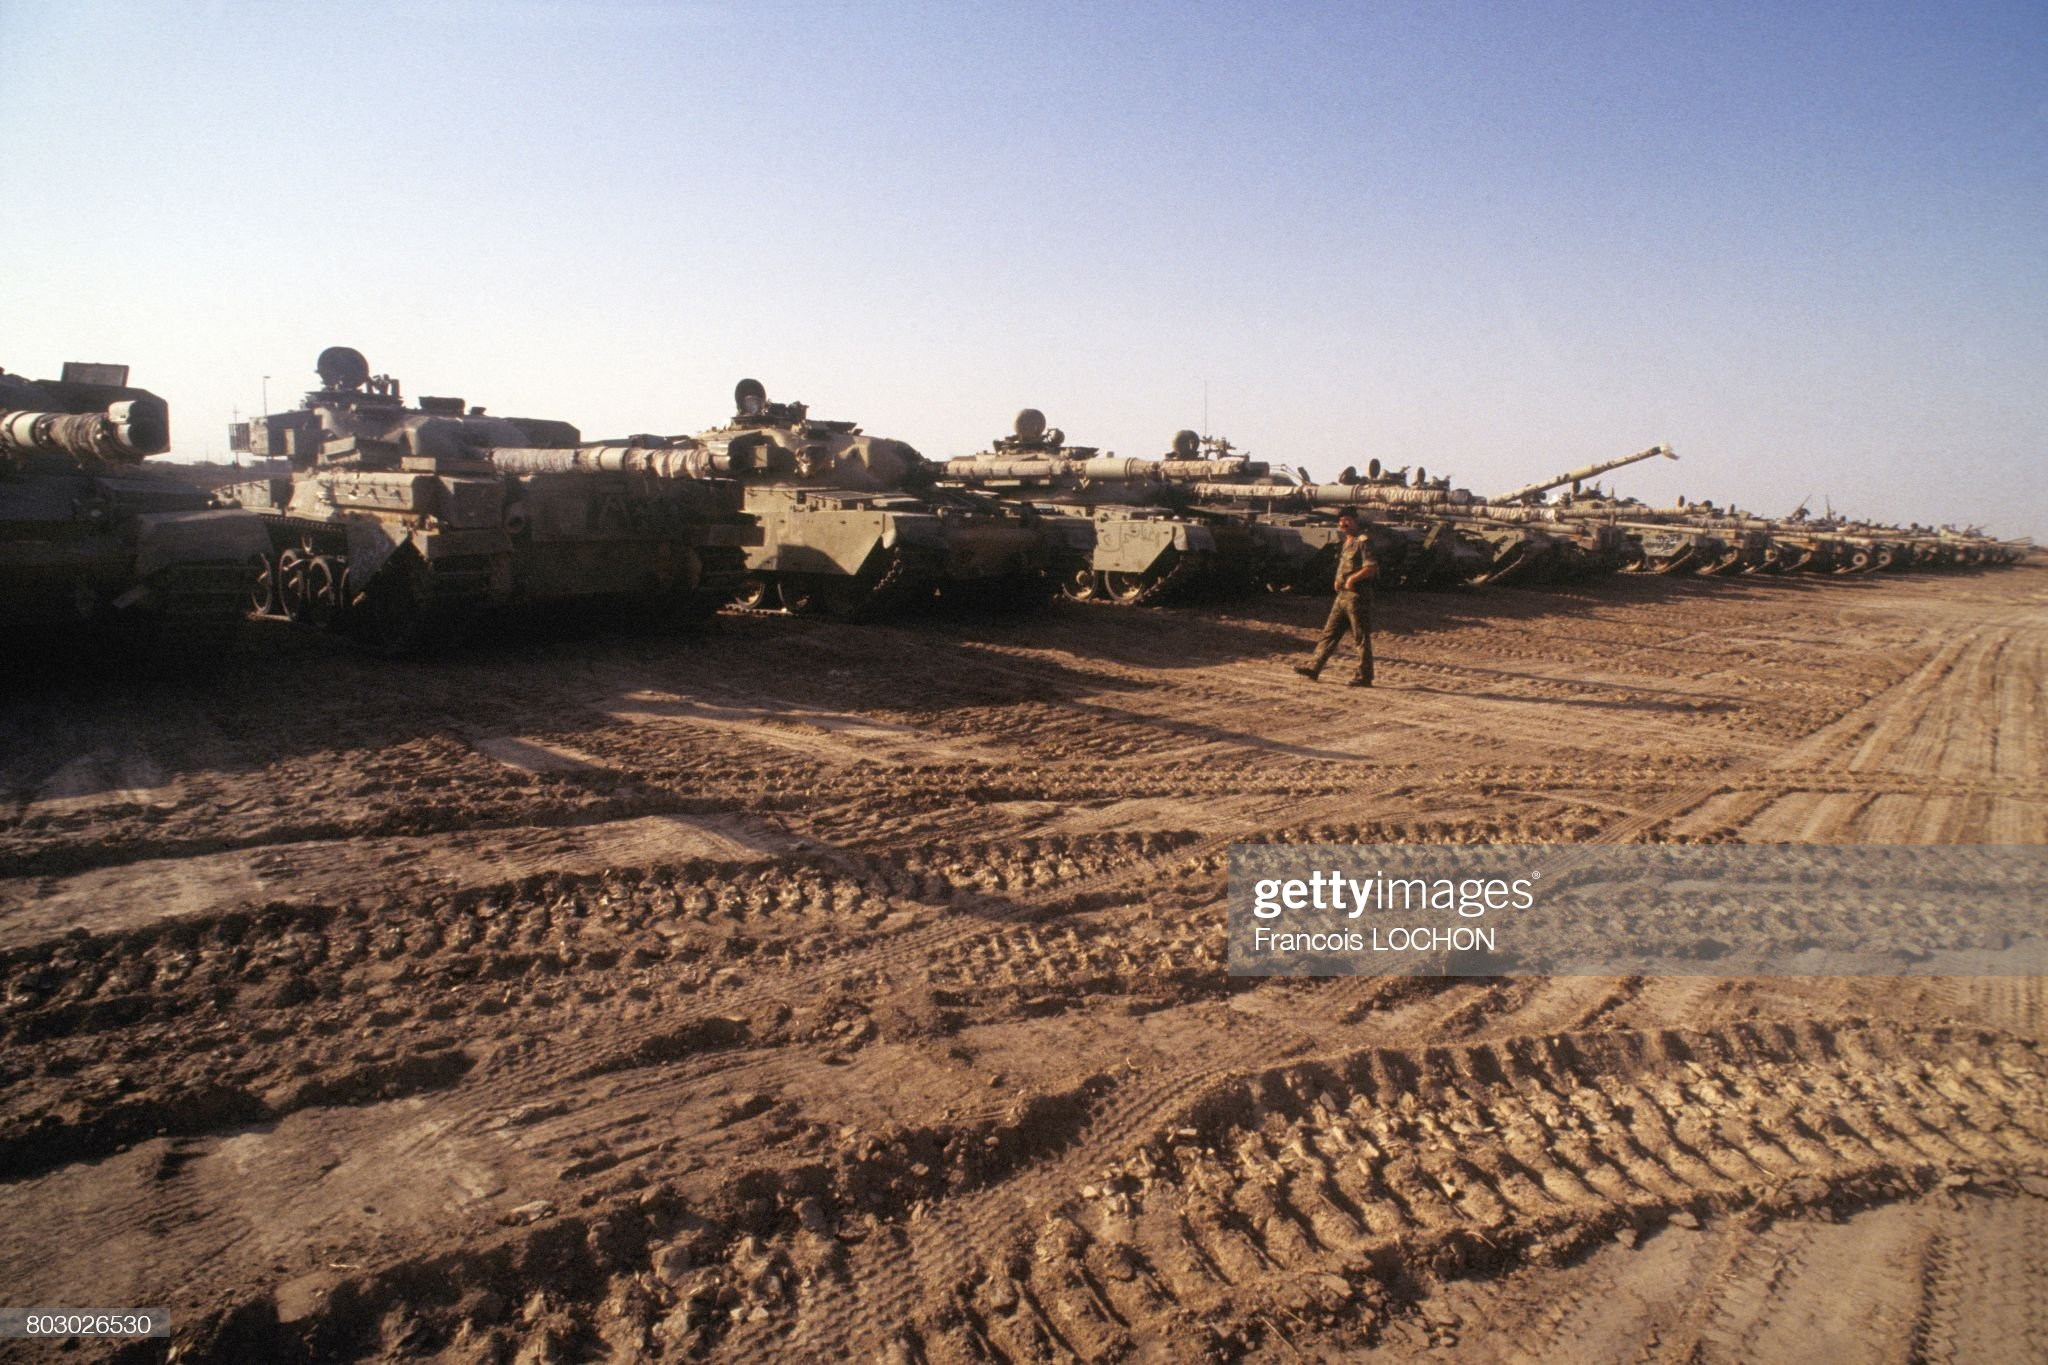 https://media.gettyimages.com/photos/iraqi-troops-seizing-tanks-from-the-iran-army-in-zubeidat-area-on-19-picture-id803026530?s=2048x2048